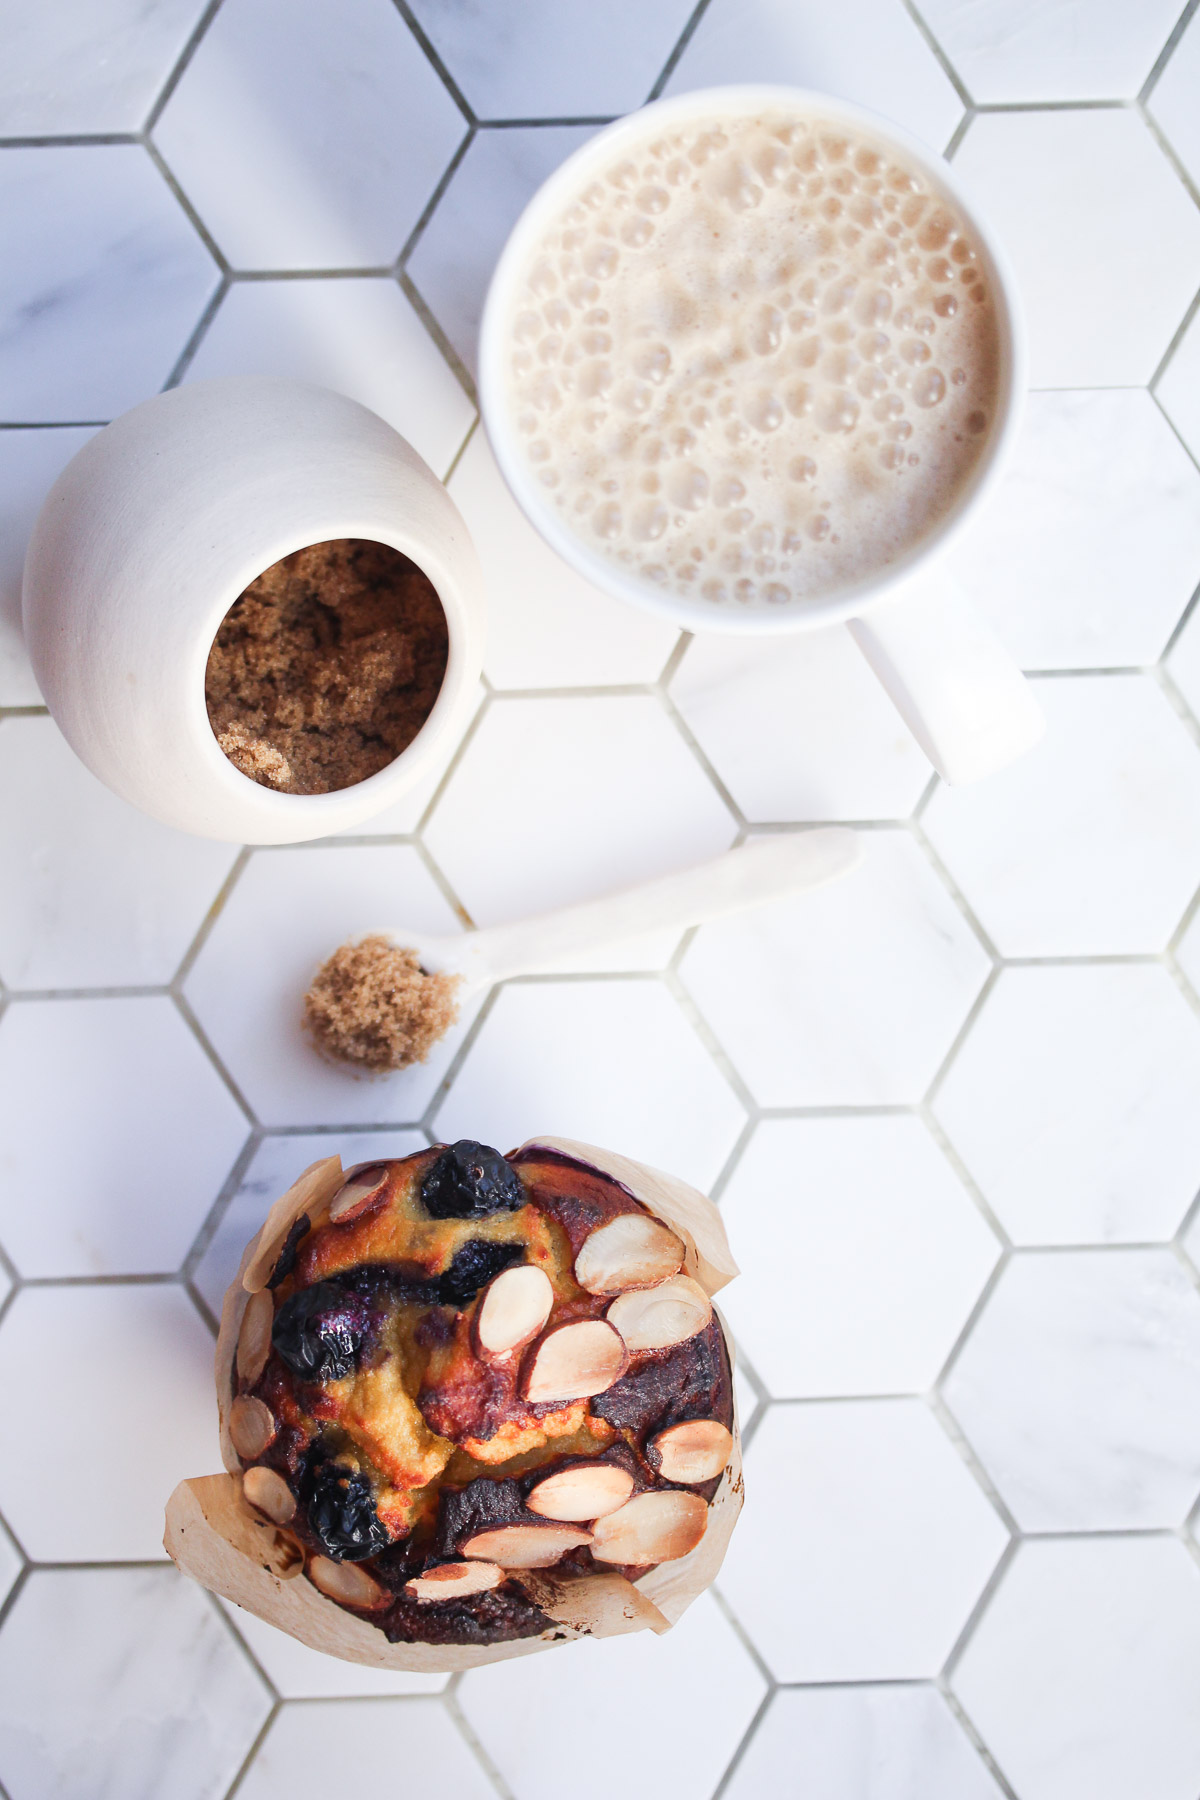 High protein muffin served with coffee